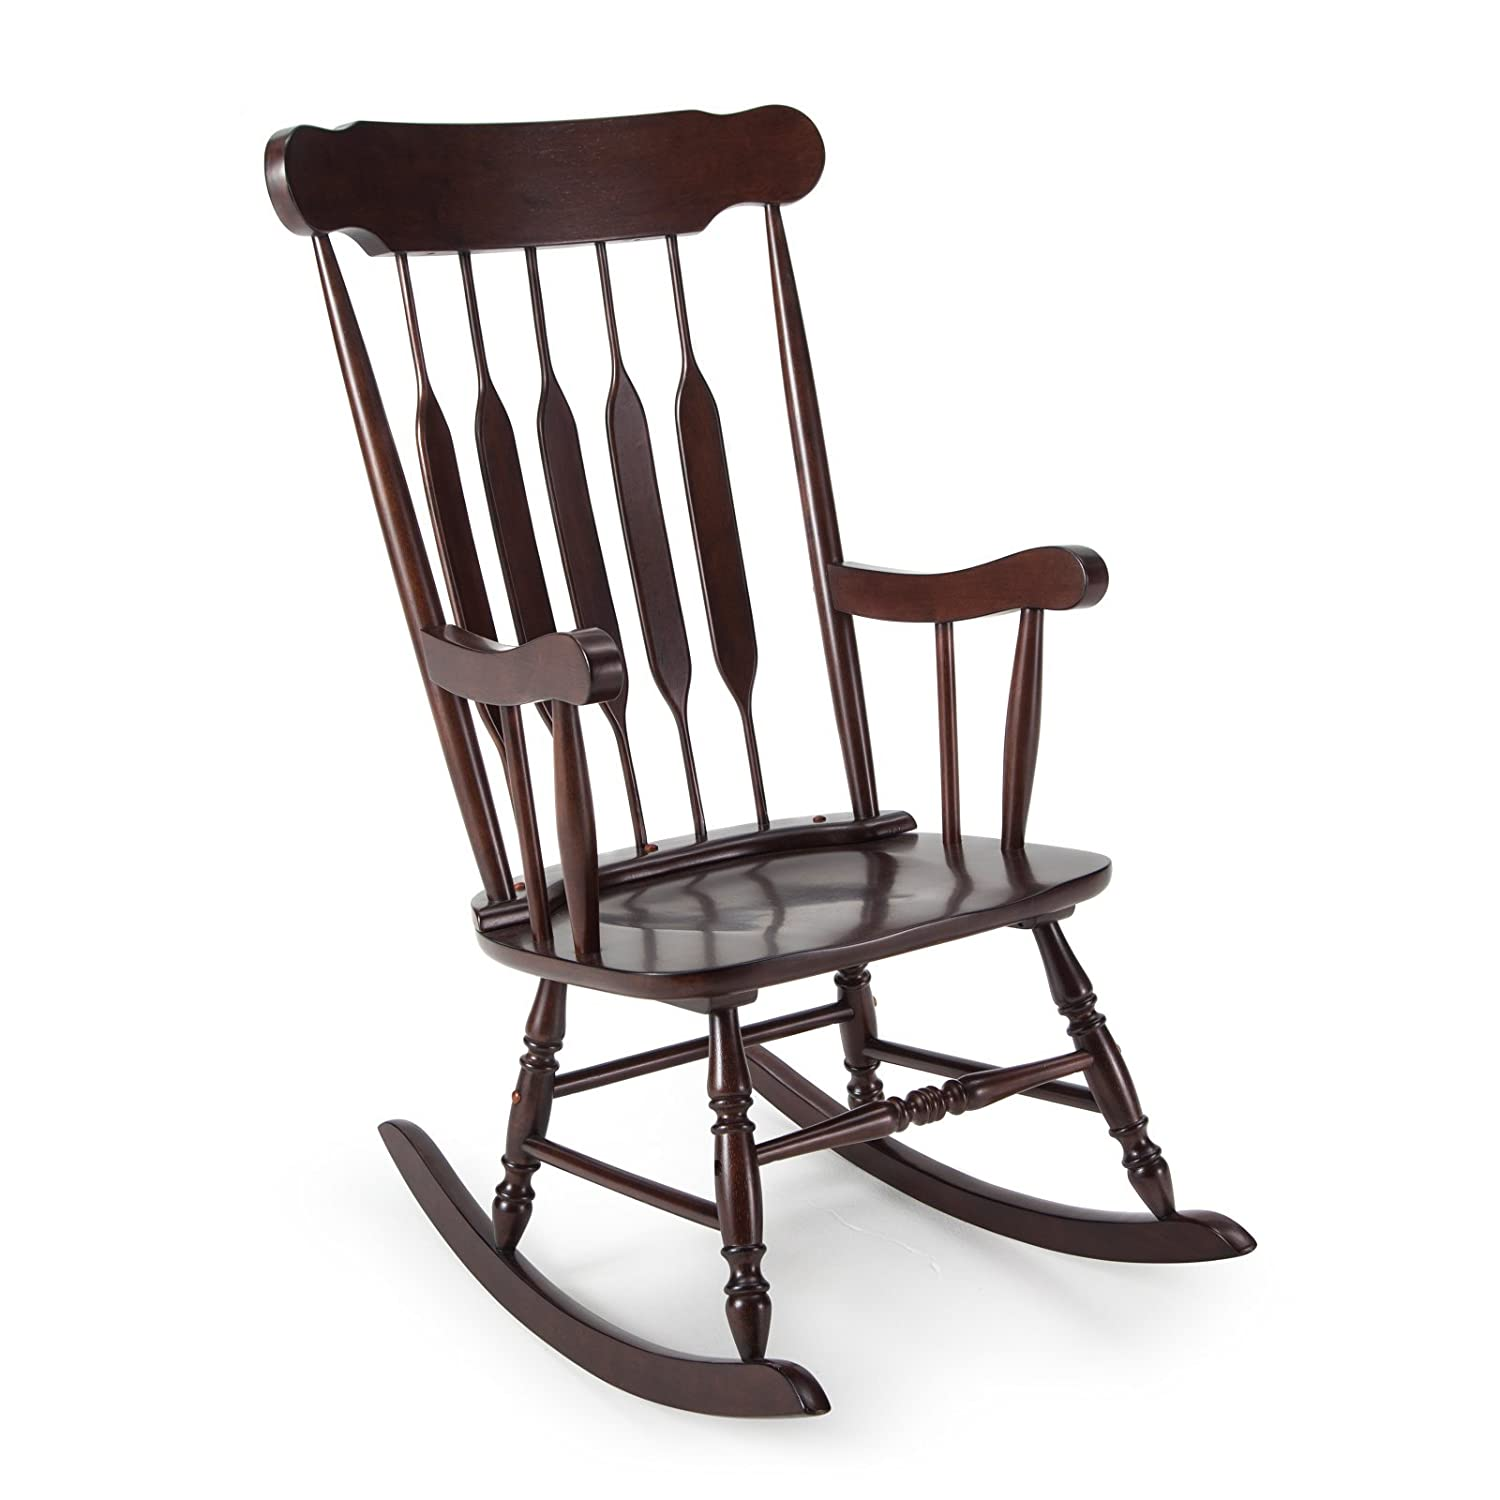 Amazon.com: Belham Living Wood Nursery Rocker   Espresso: Kitchen U0026 Dining